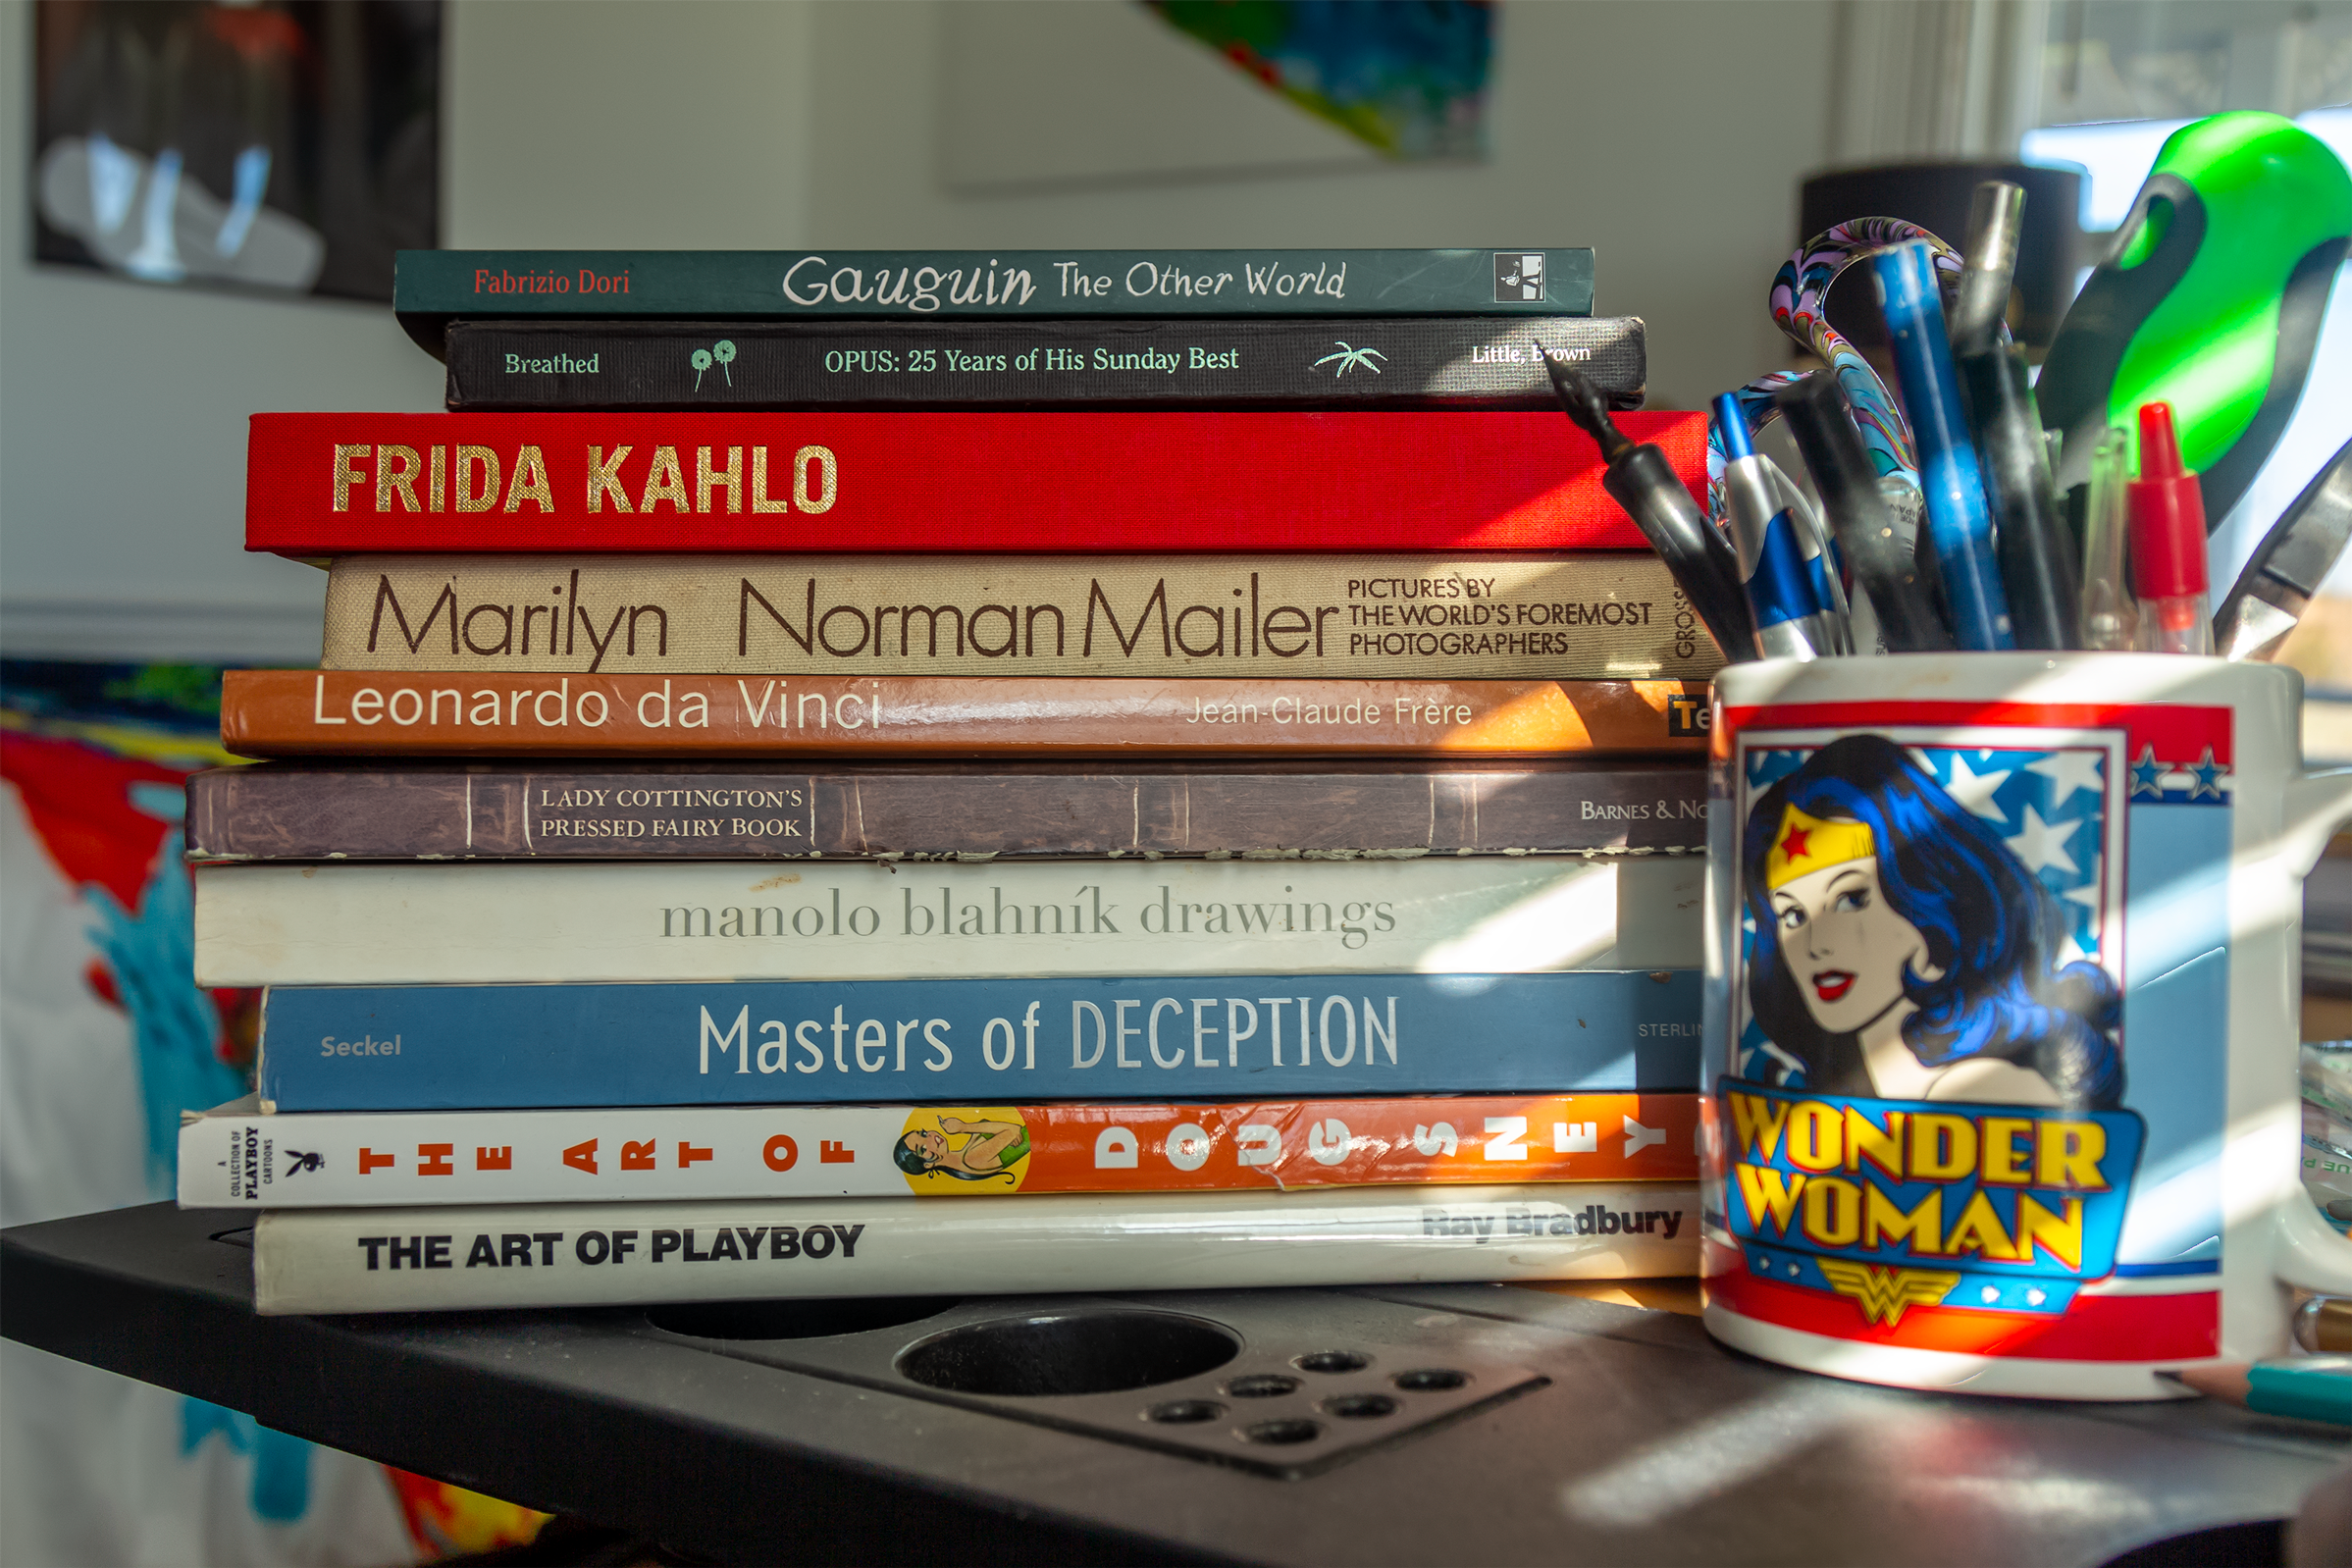 A stack of art books on a drafting table with a Wonder Woman coffee mug full of pens.